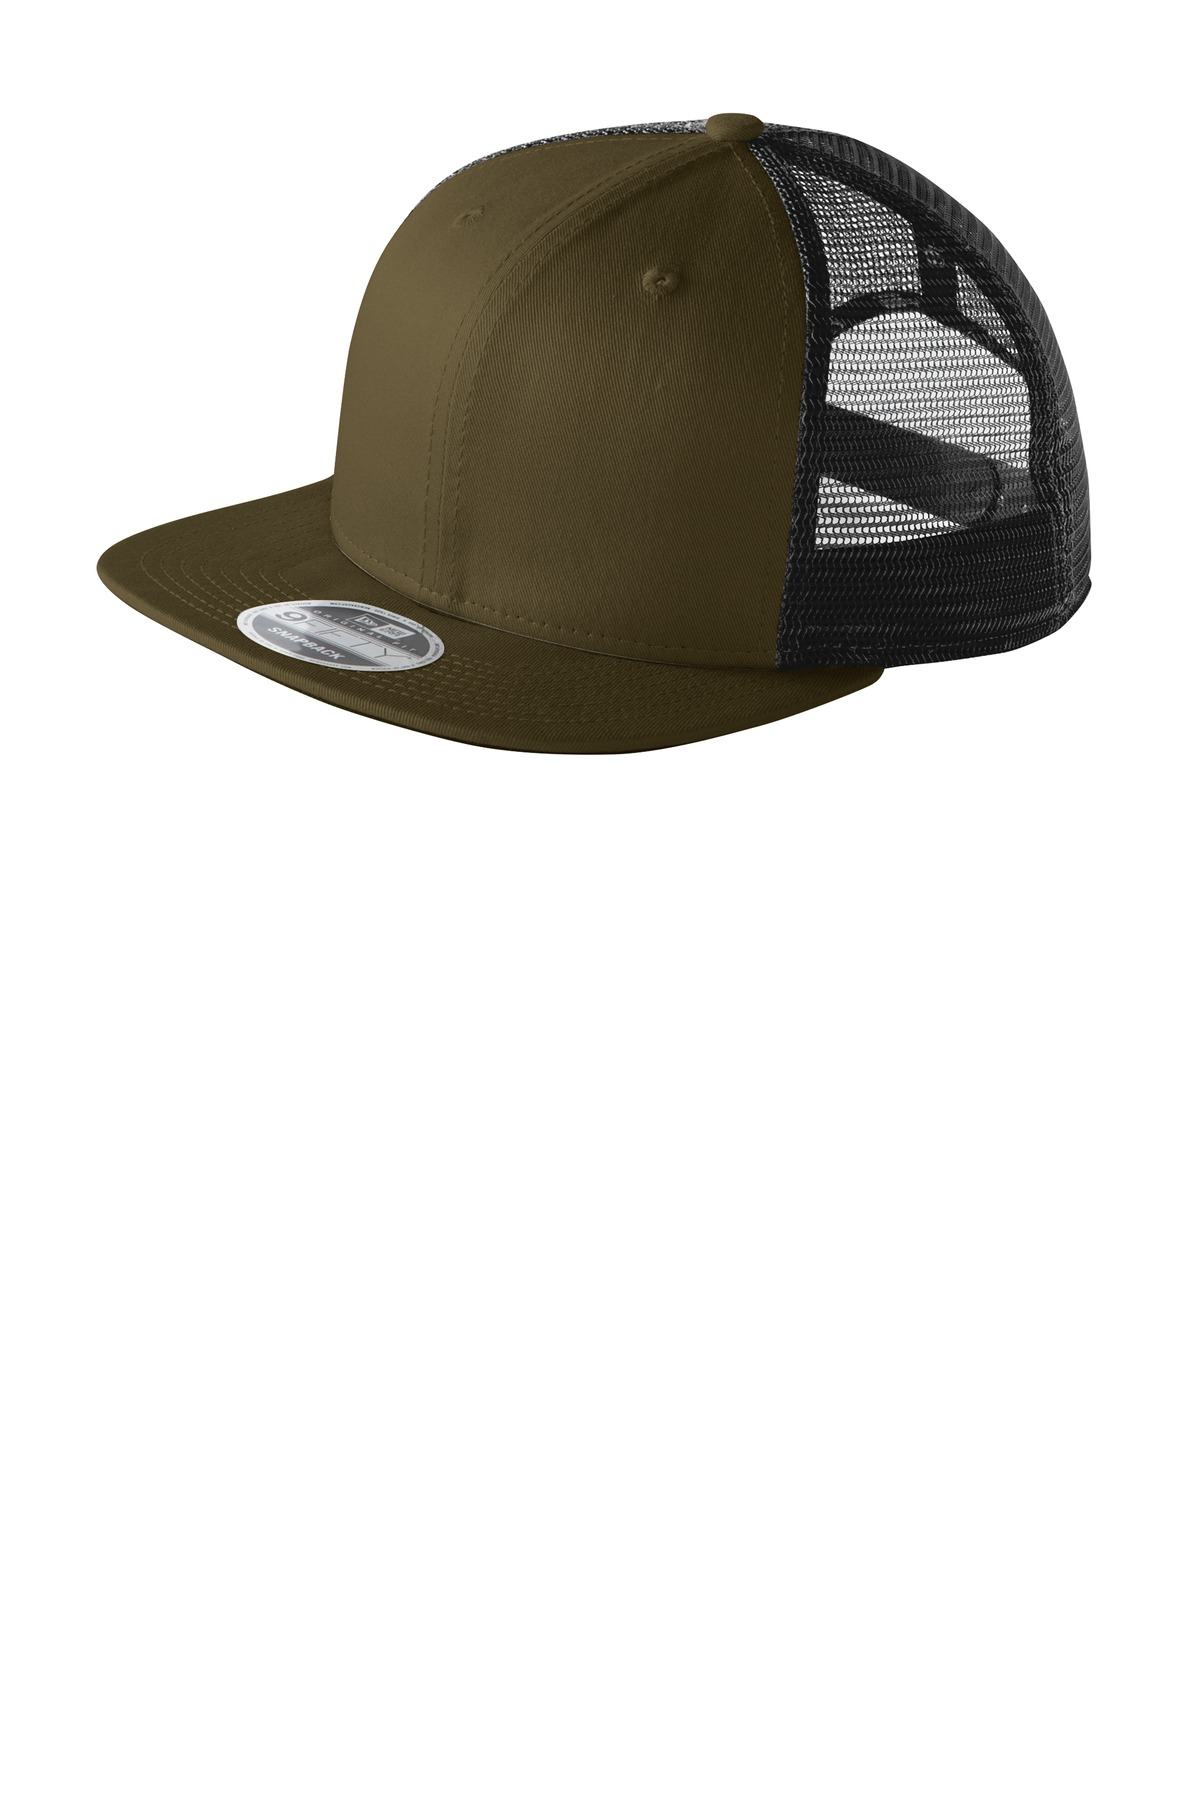 New Era ®  Original Fit Snapback Trucker Cap. NE403 - Olive/ Black